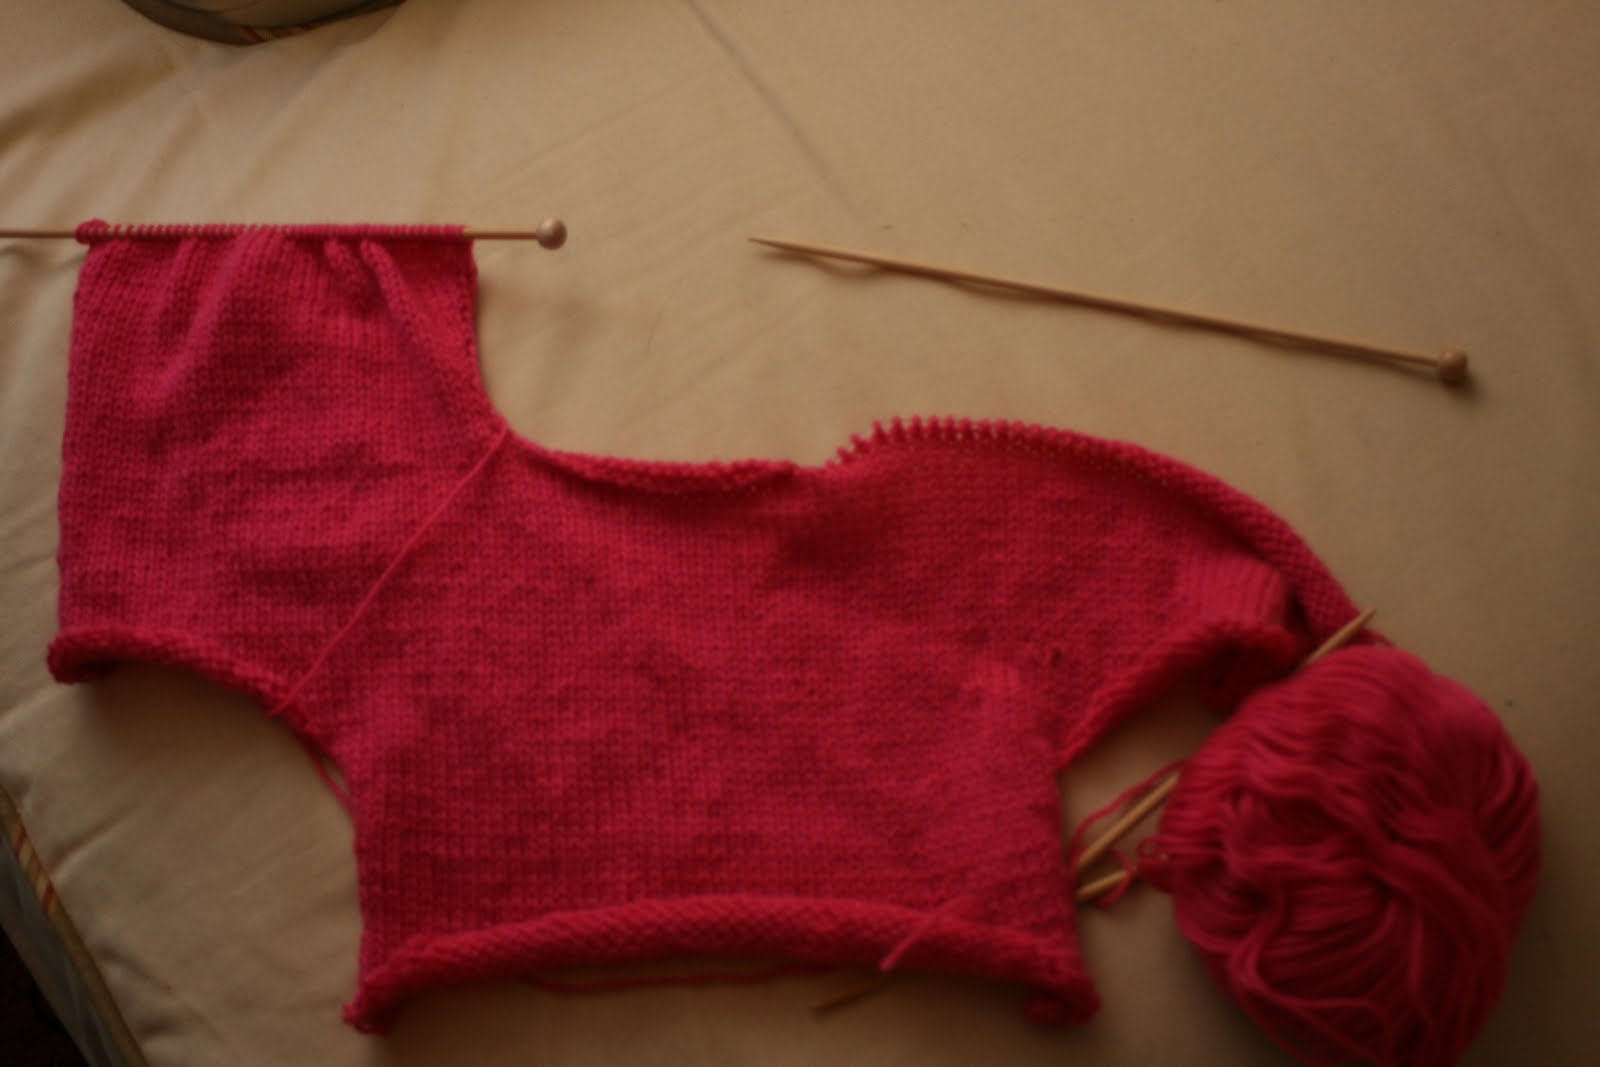 making a baby shrug to go over it since it will be cold no matter ...